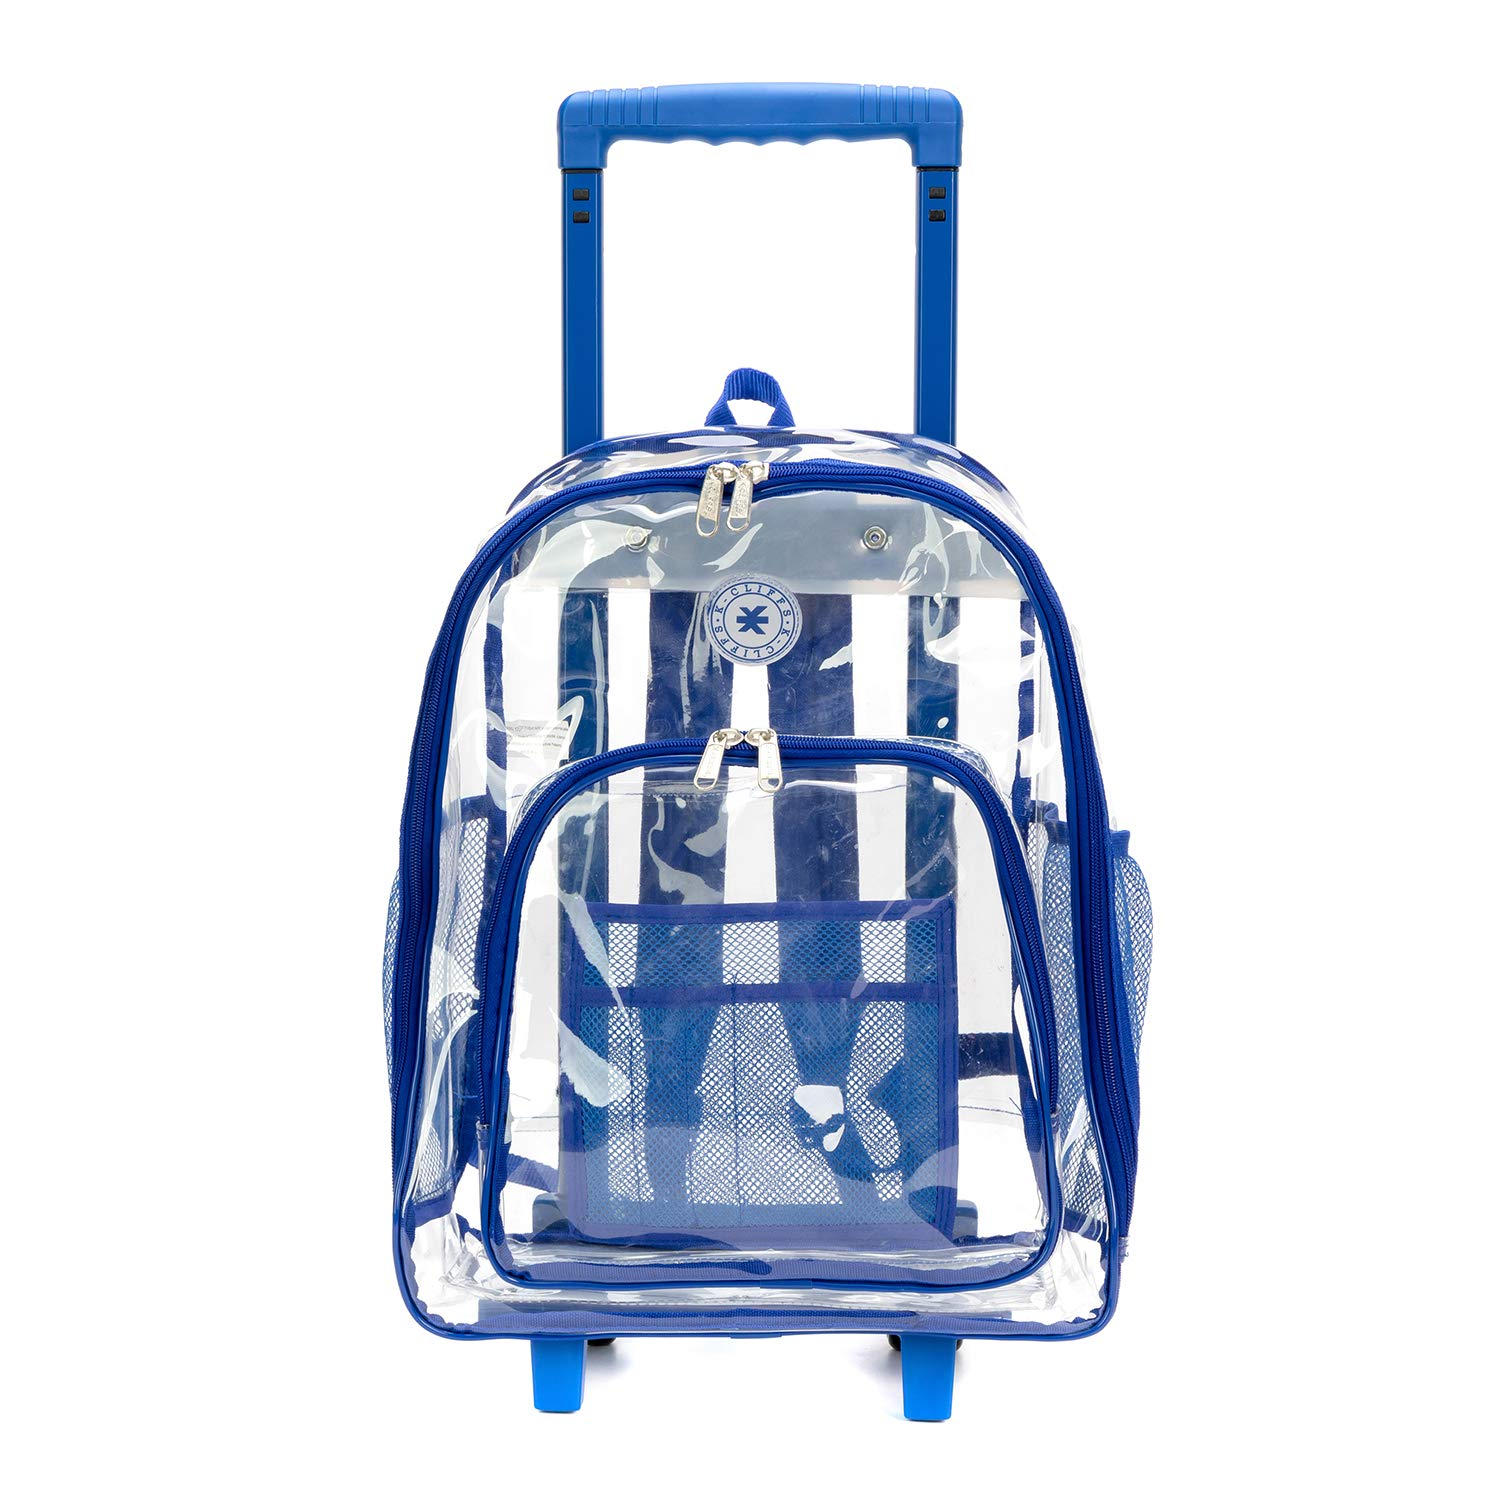 Rolling Clear Backpack Heavy Duty See Through Daypack School Bookbag Wheel Royal By All Fine